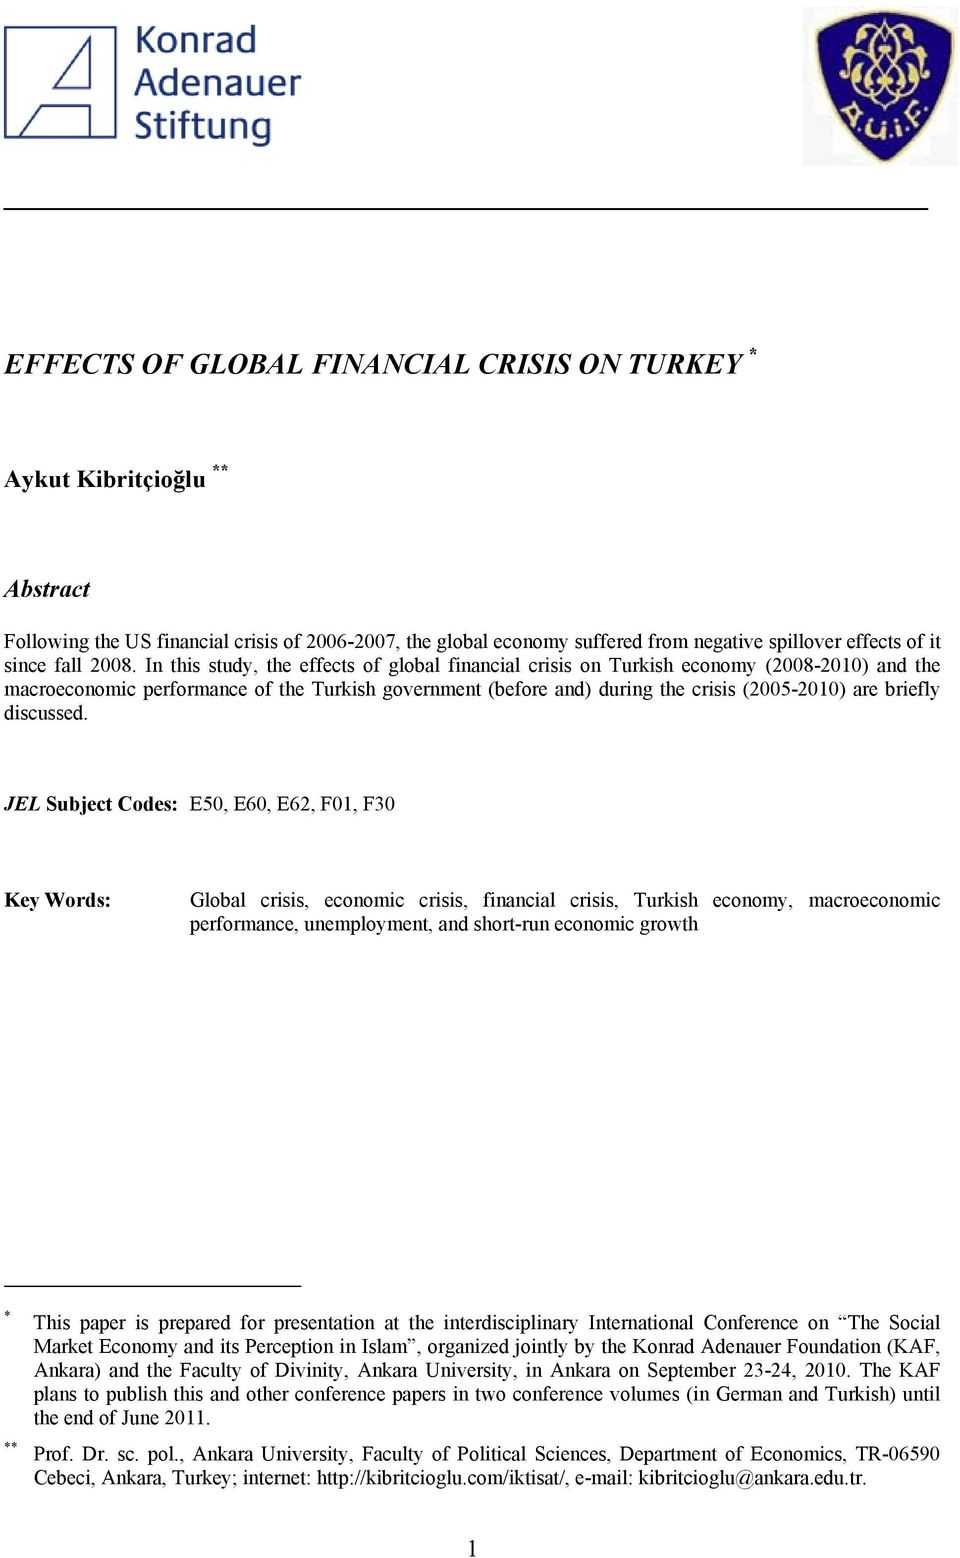 In this study, the effects of global financial crisis on Turkish economy (2008-2010) and the macroeconomic performance of the Turkish government (before and) during the crisis (2005-2010) are briefly